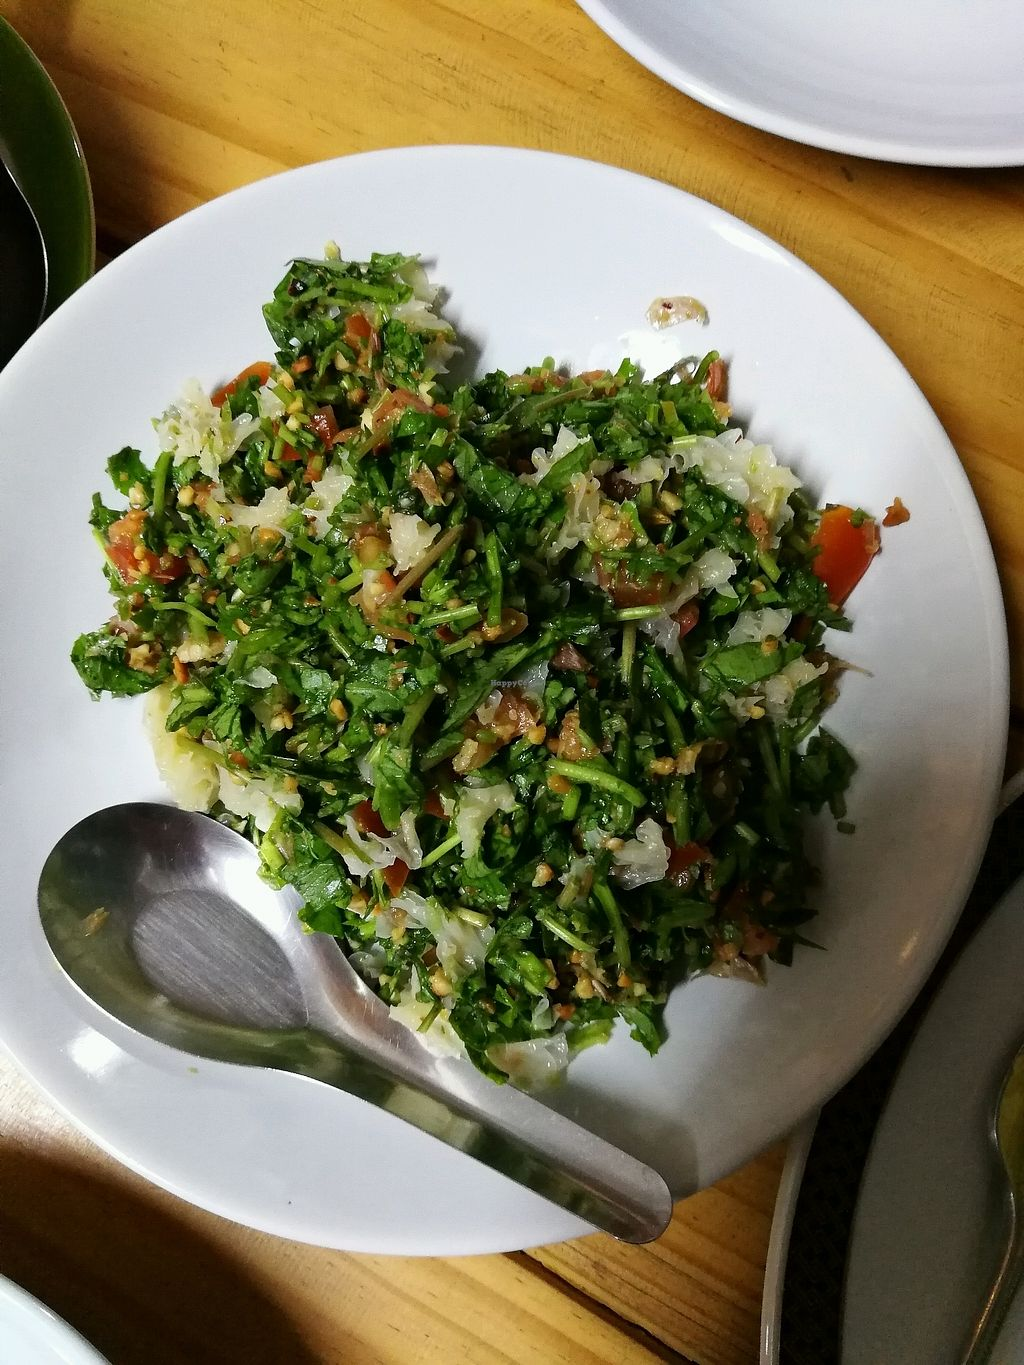 "Photo of INA House  by <a href=""/members/profile/RawChefYin"">RawChefYin</a> <br/>Asiatic pennywort salad  <br/> January 26, 2018  - <a href='/contact/abuse/image/83154/351140'>Report</a>"